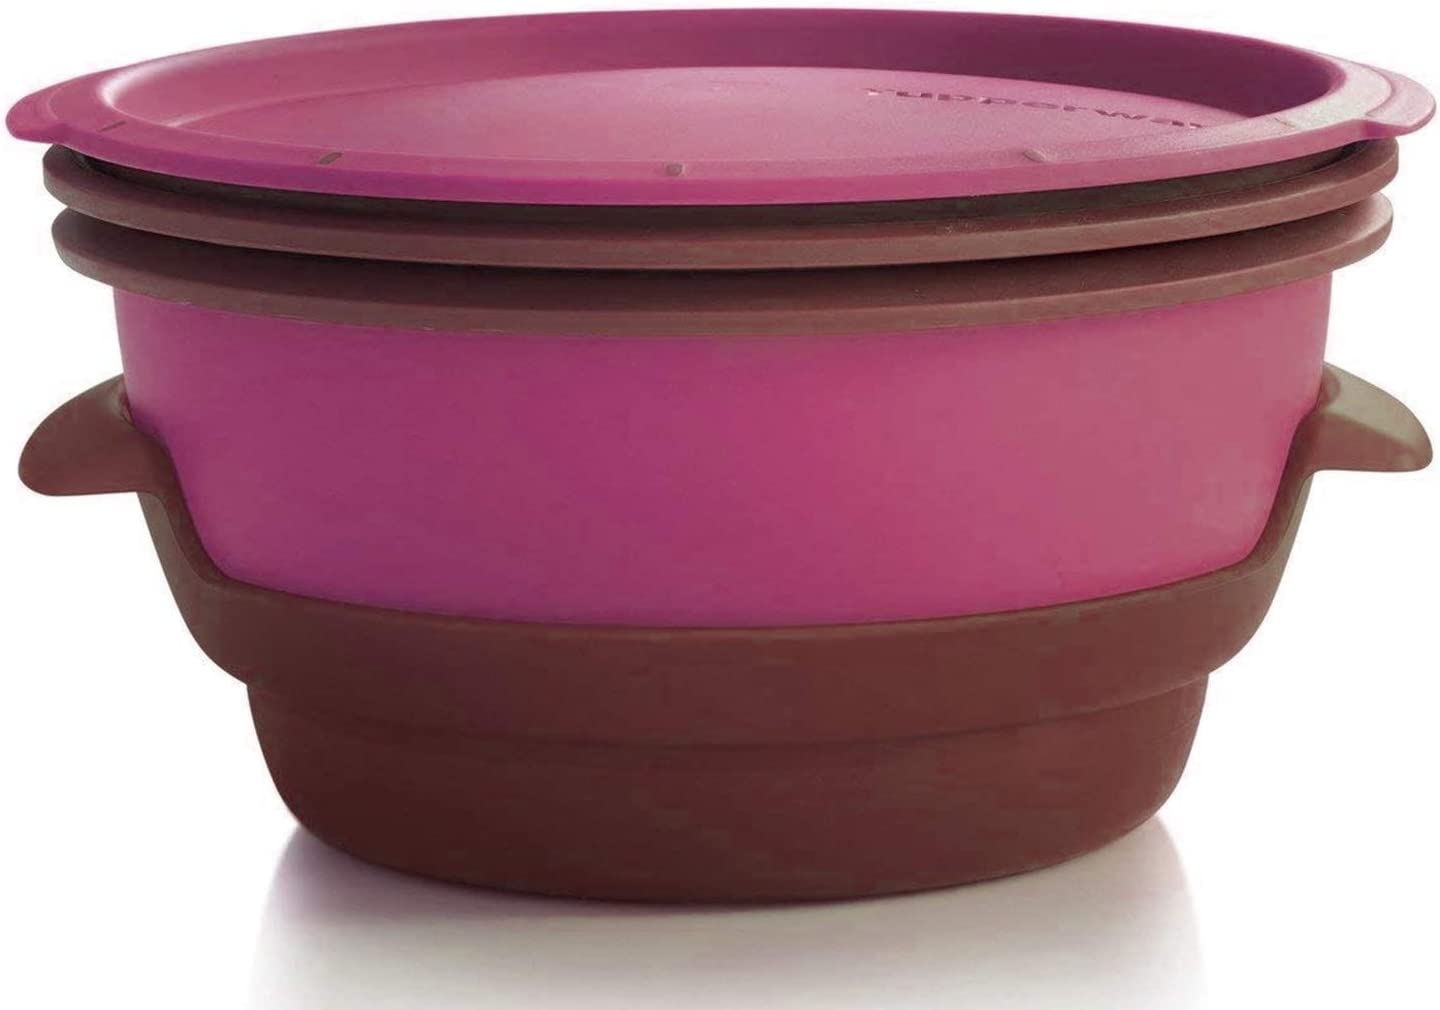 Tupperware Smart Steamer in New Royal Amethyst Purple - Microwave Safe